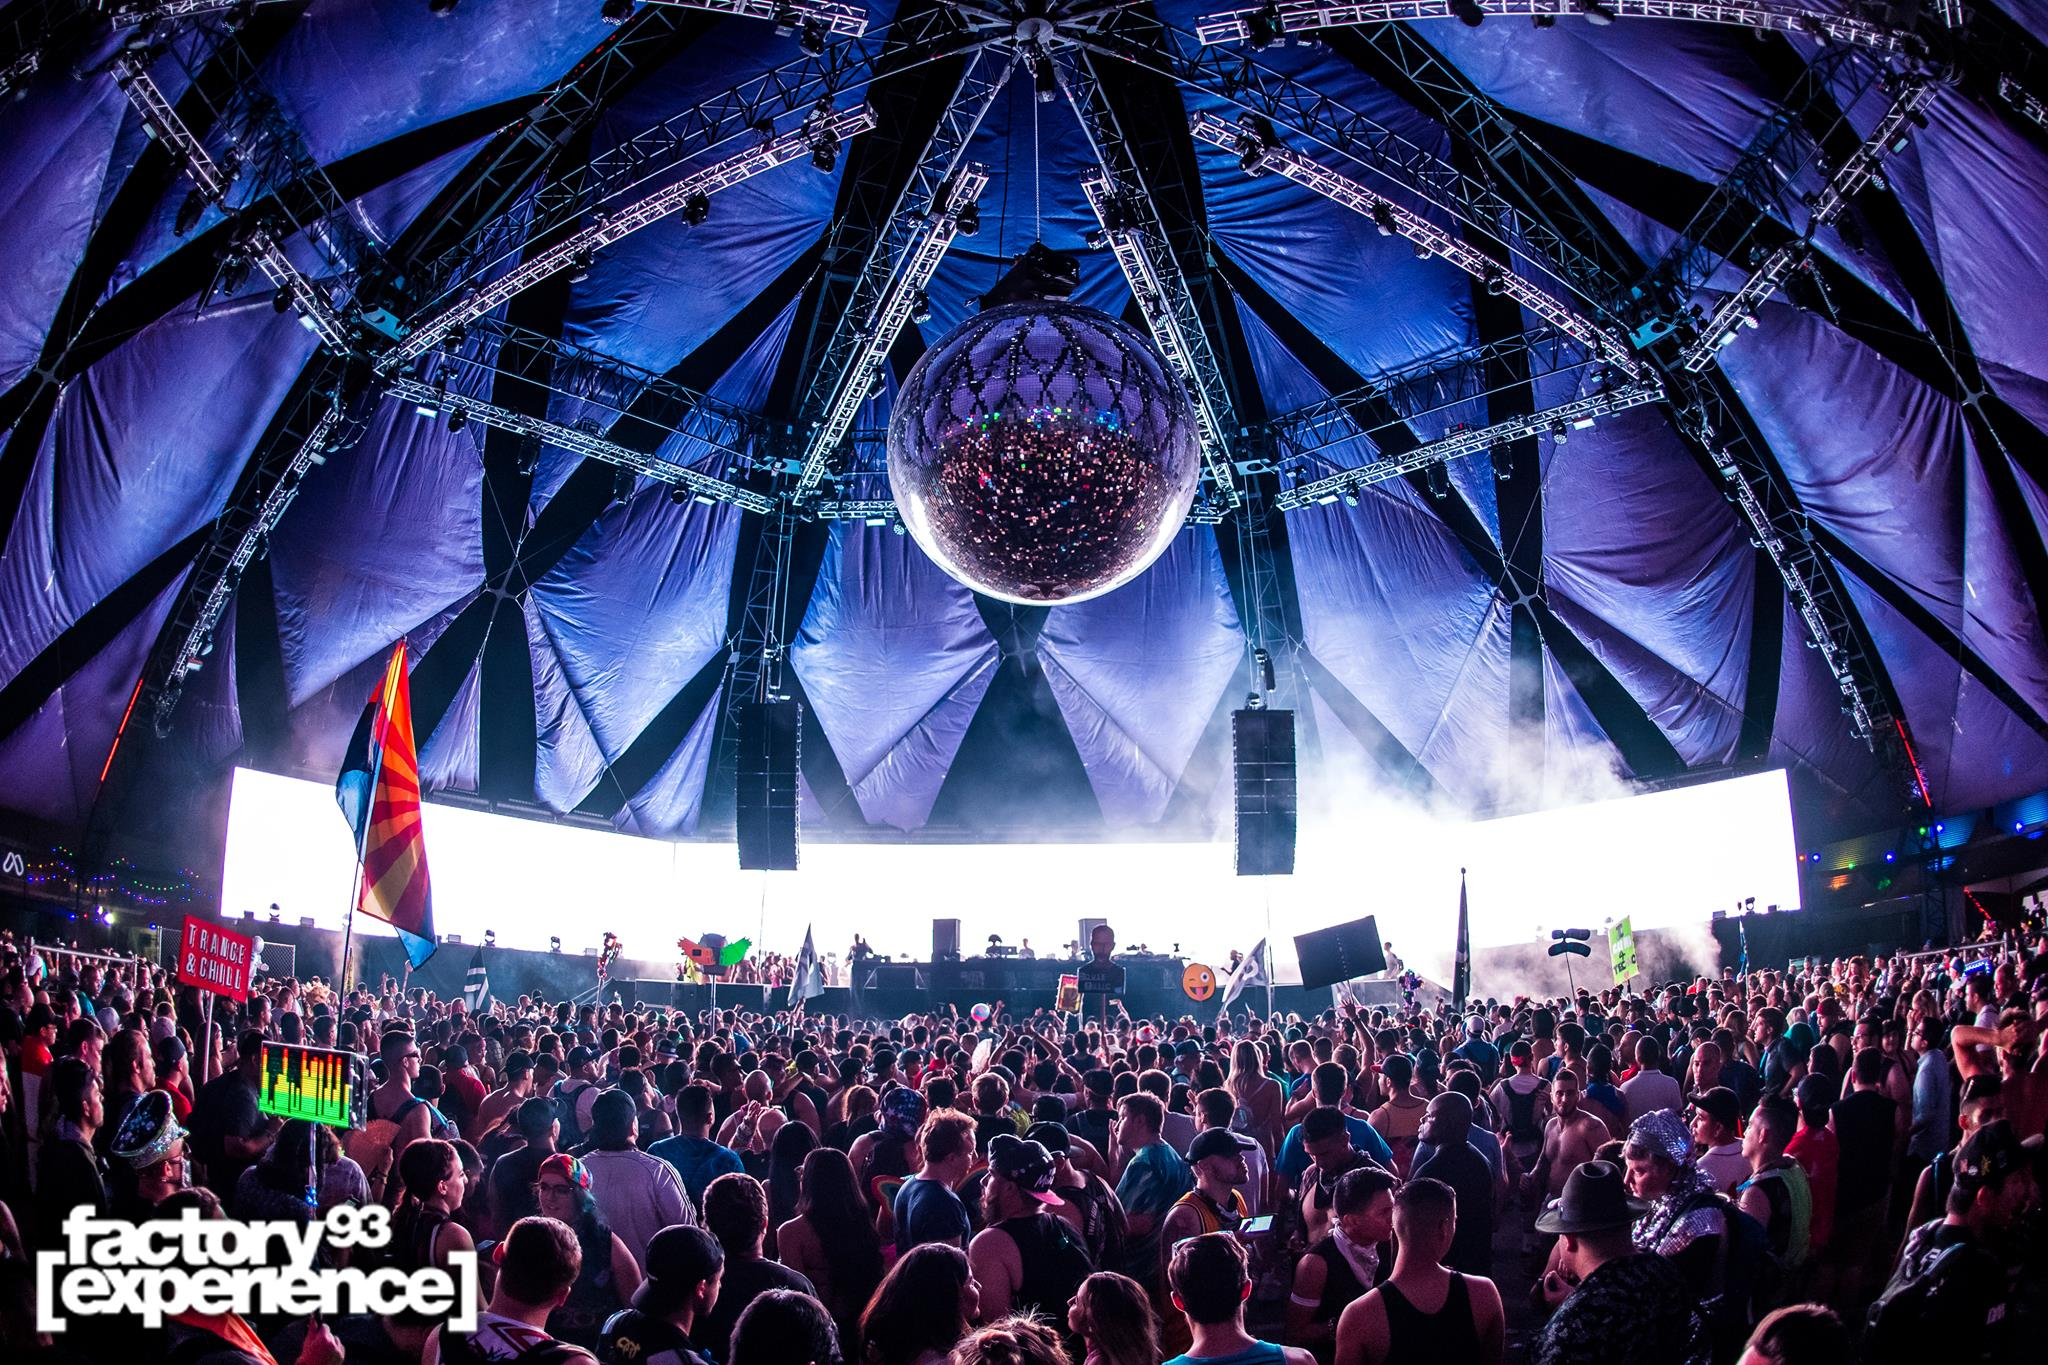 Insomniac's Factory 93 Returns With Carl Cox This March